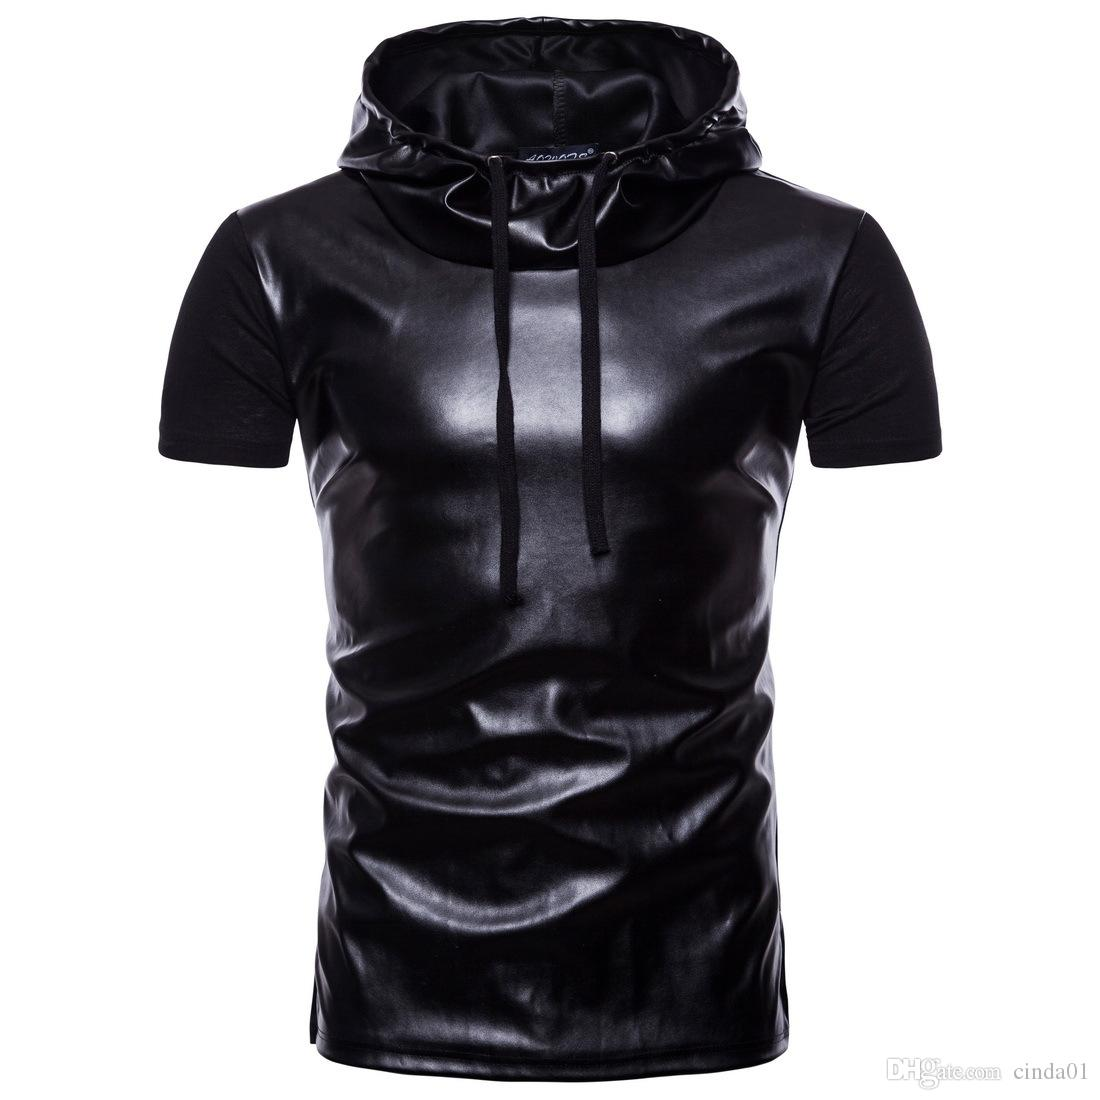 c622937ad6ca Mens Leather Panelled Hooded Casual T Shirts High Street Short Sleeve Hoodies  Male Hip Hop Crew Neck T Shirts Buy Online T Shirts Make Tee Shirts From ...